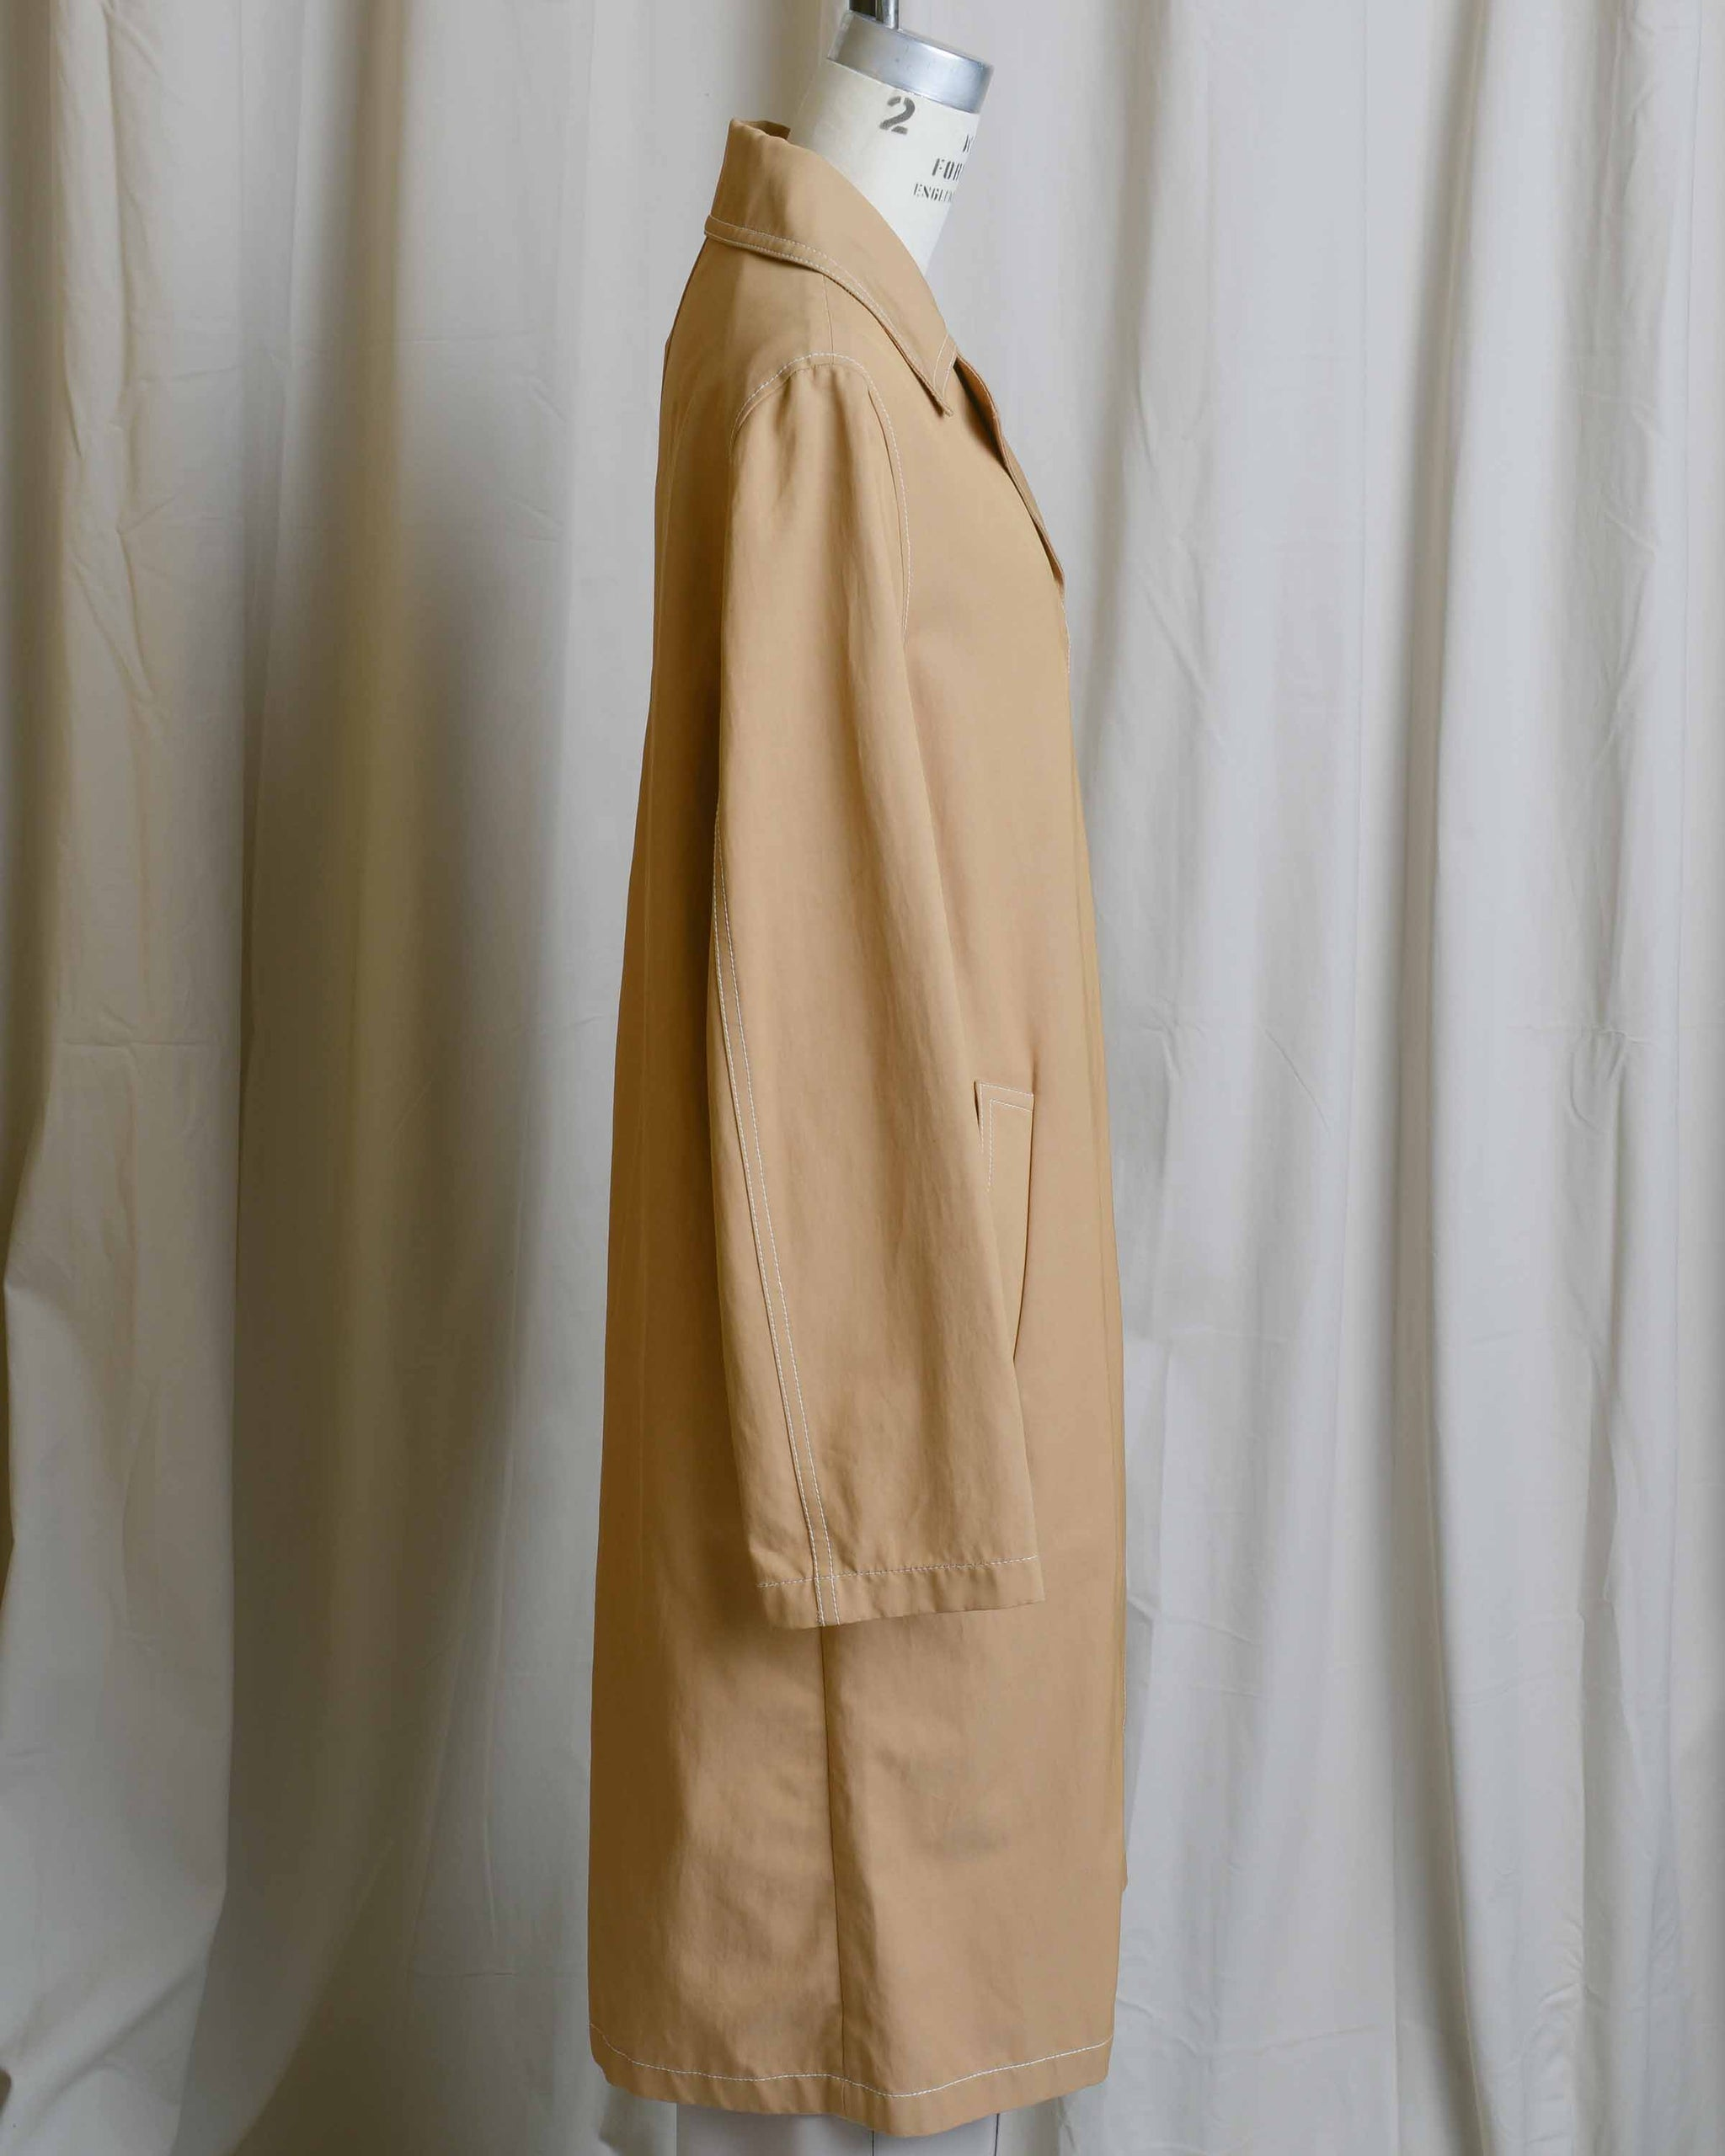 Molly Mac Trench Coat